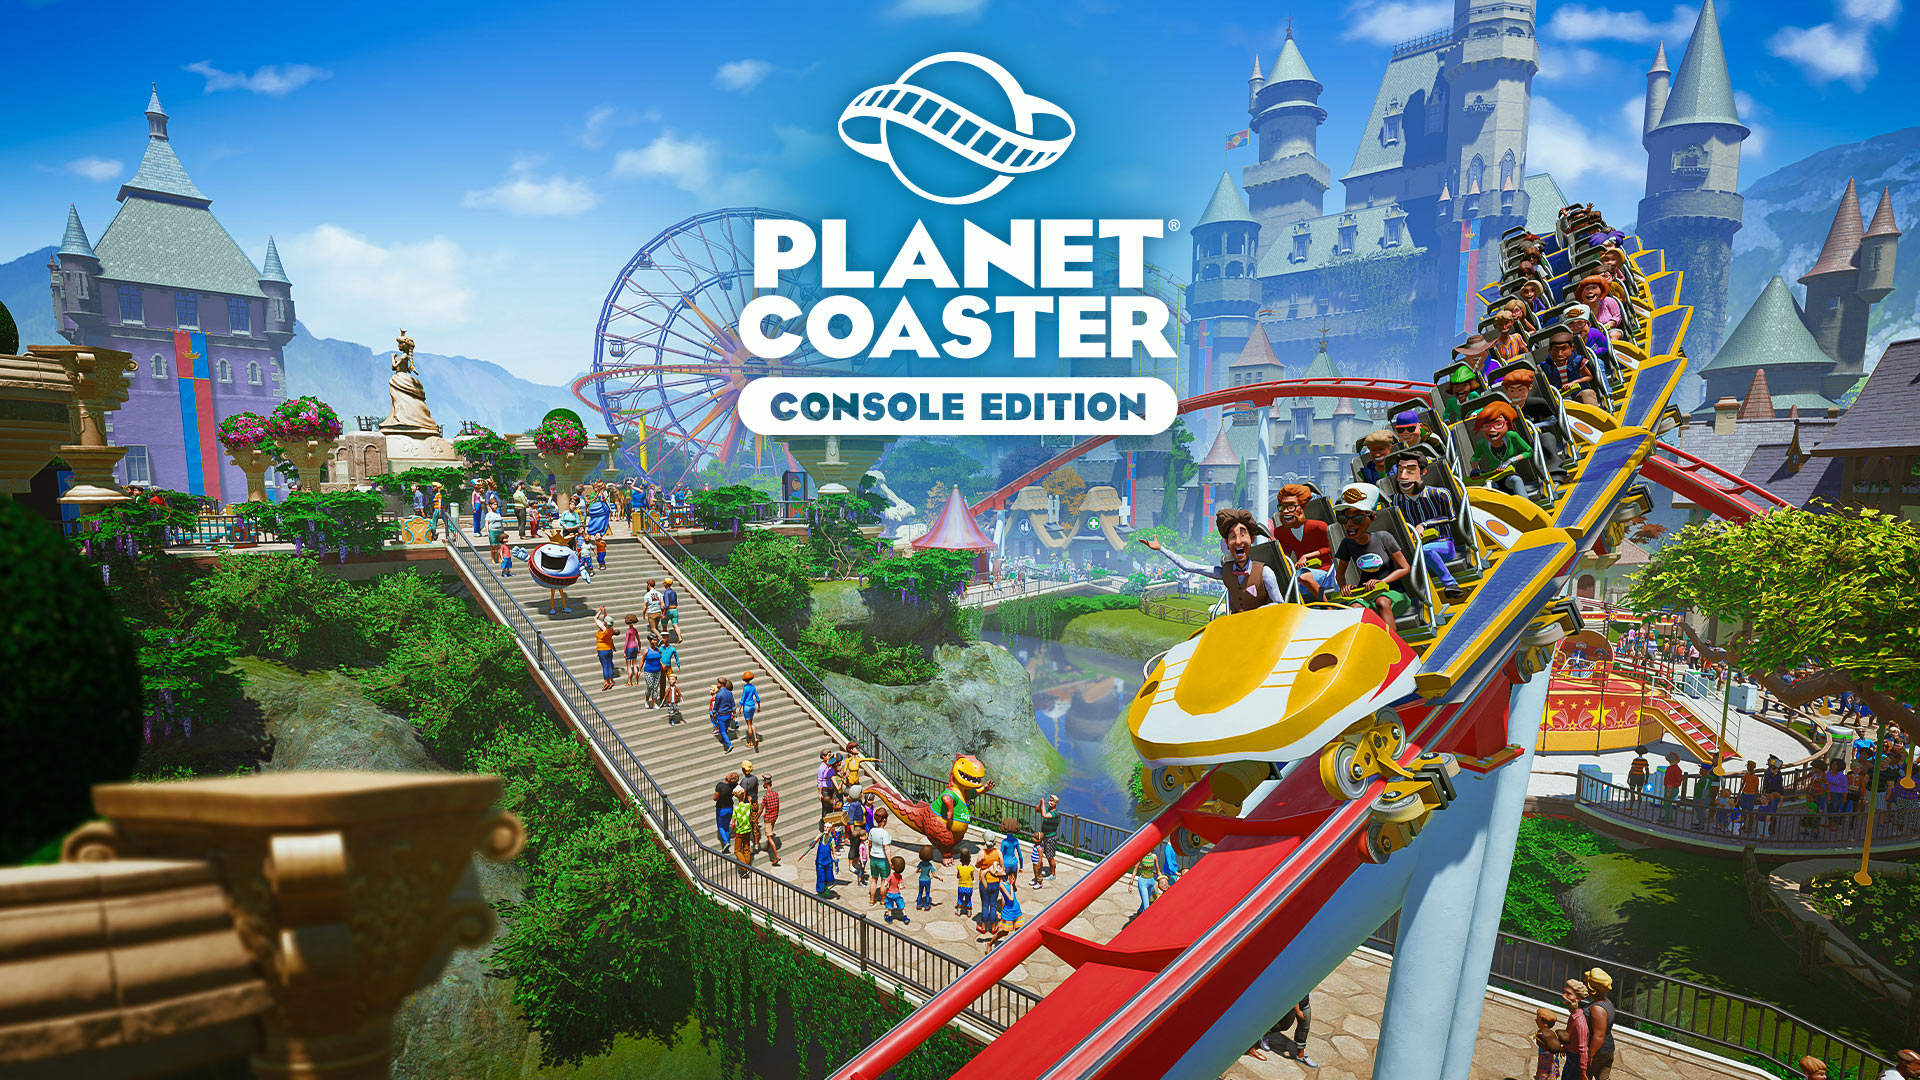 Planet Coaster: Console Edition available to pre-order now - Frontier